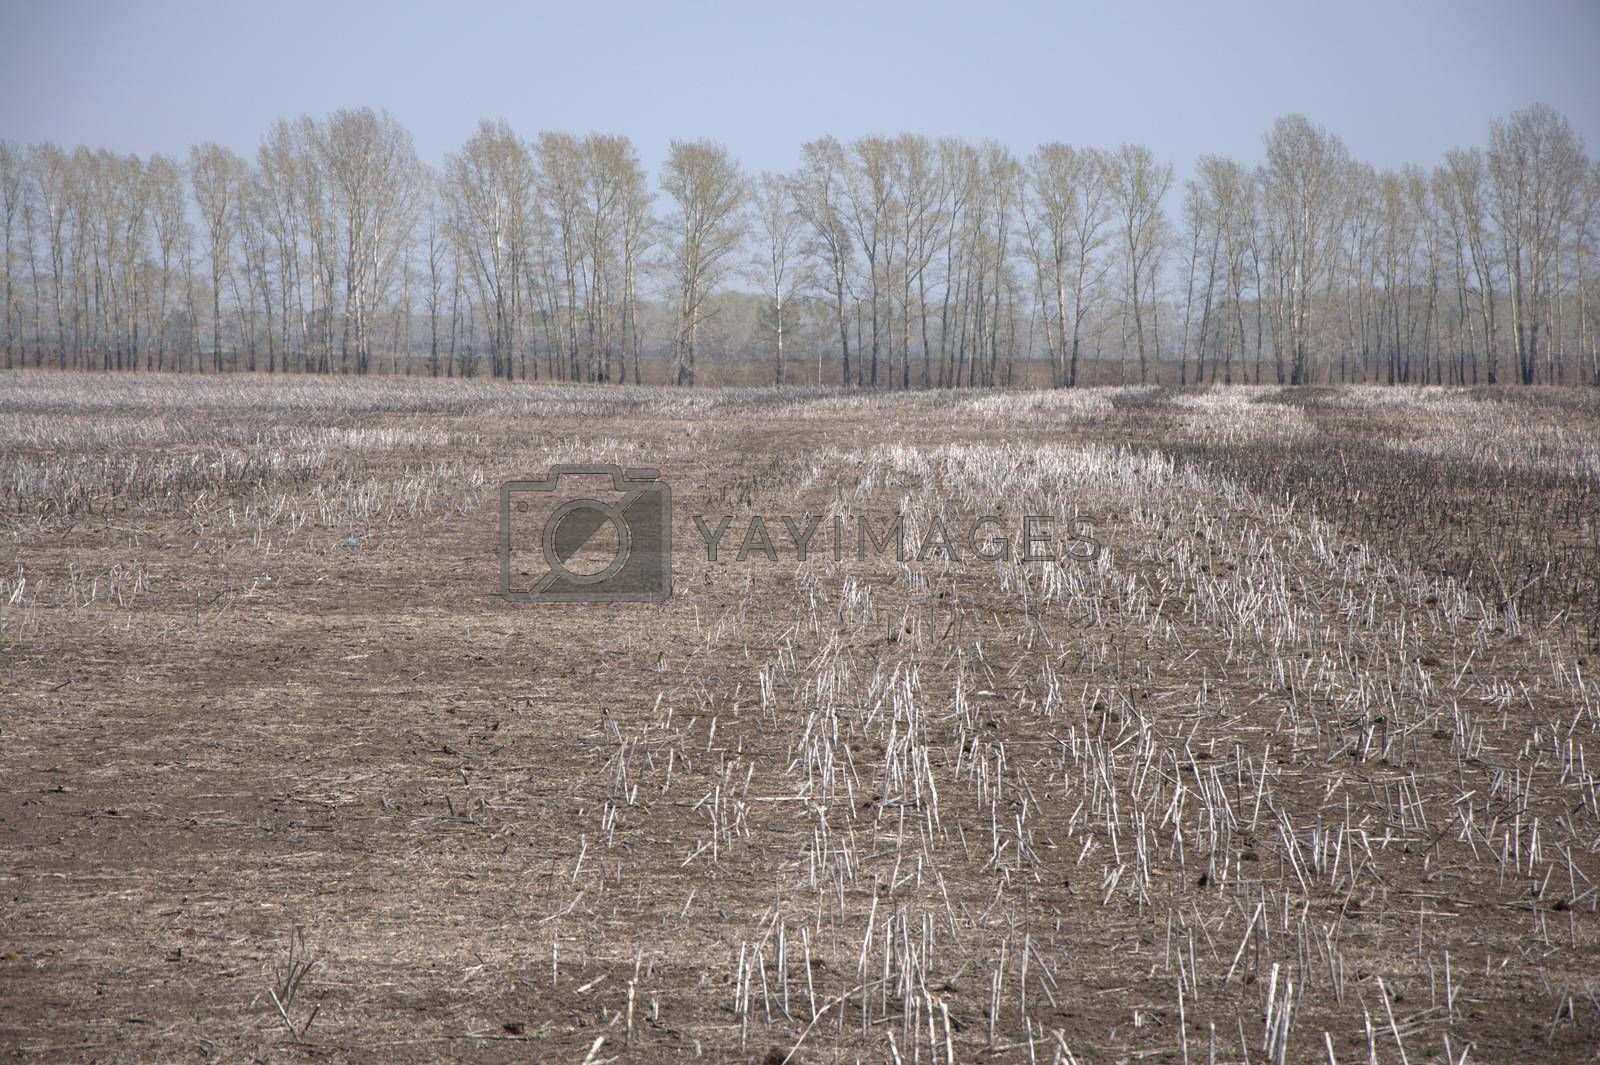 Freshly plowed field with the remnants of winter crops. Landscape. by Alex Yellow